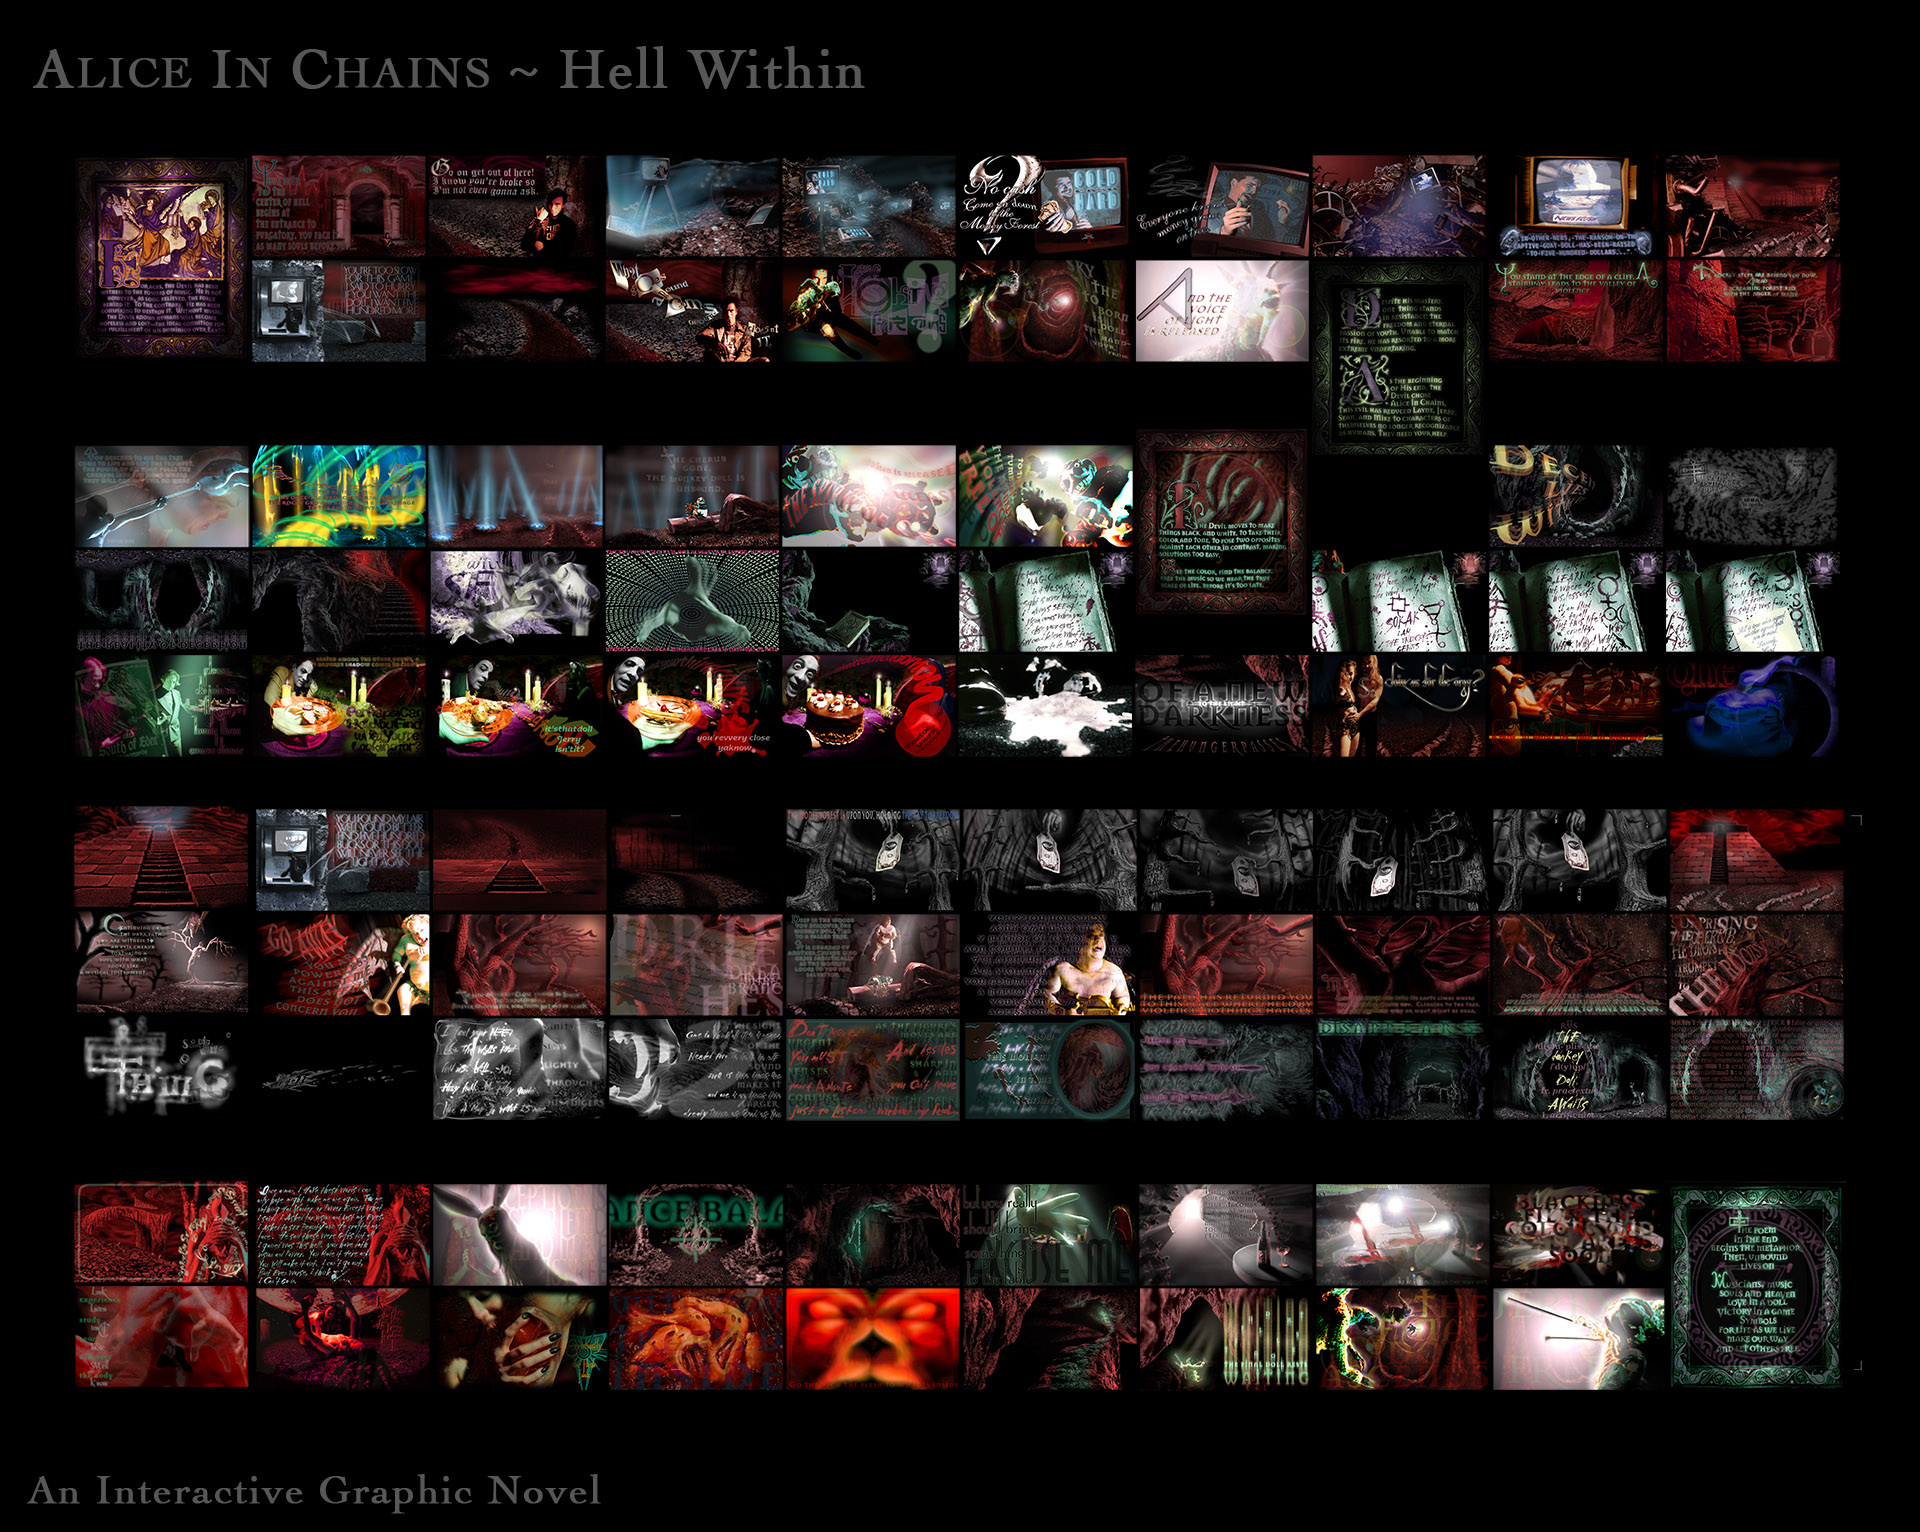 A colorful layout of scenes from the Alice In Chains graphic novel, Hell Within.